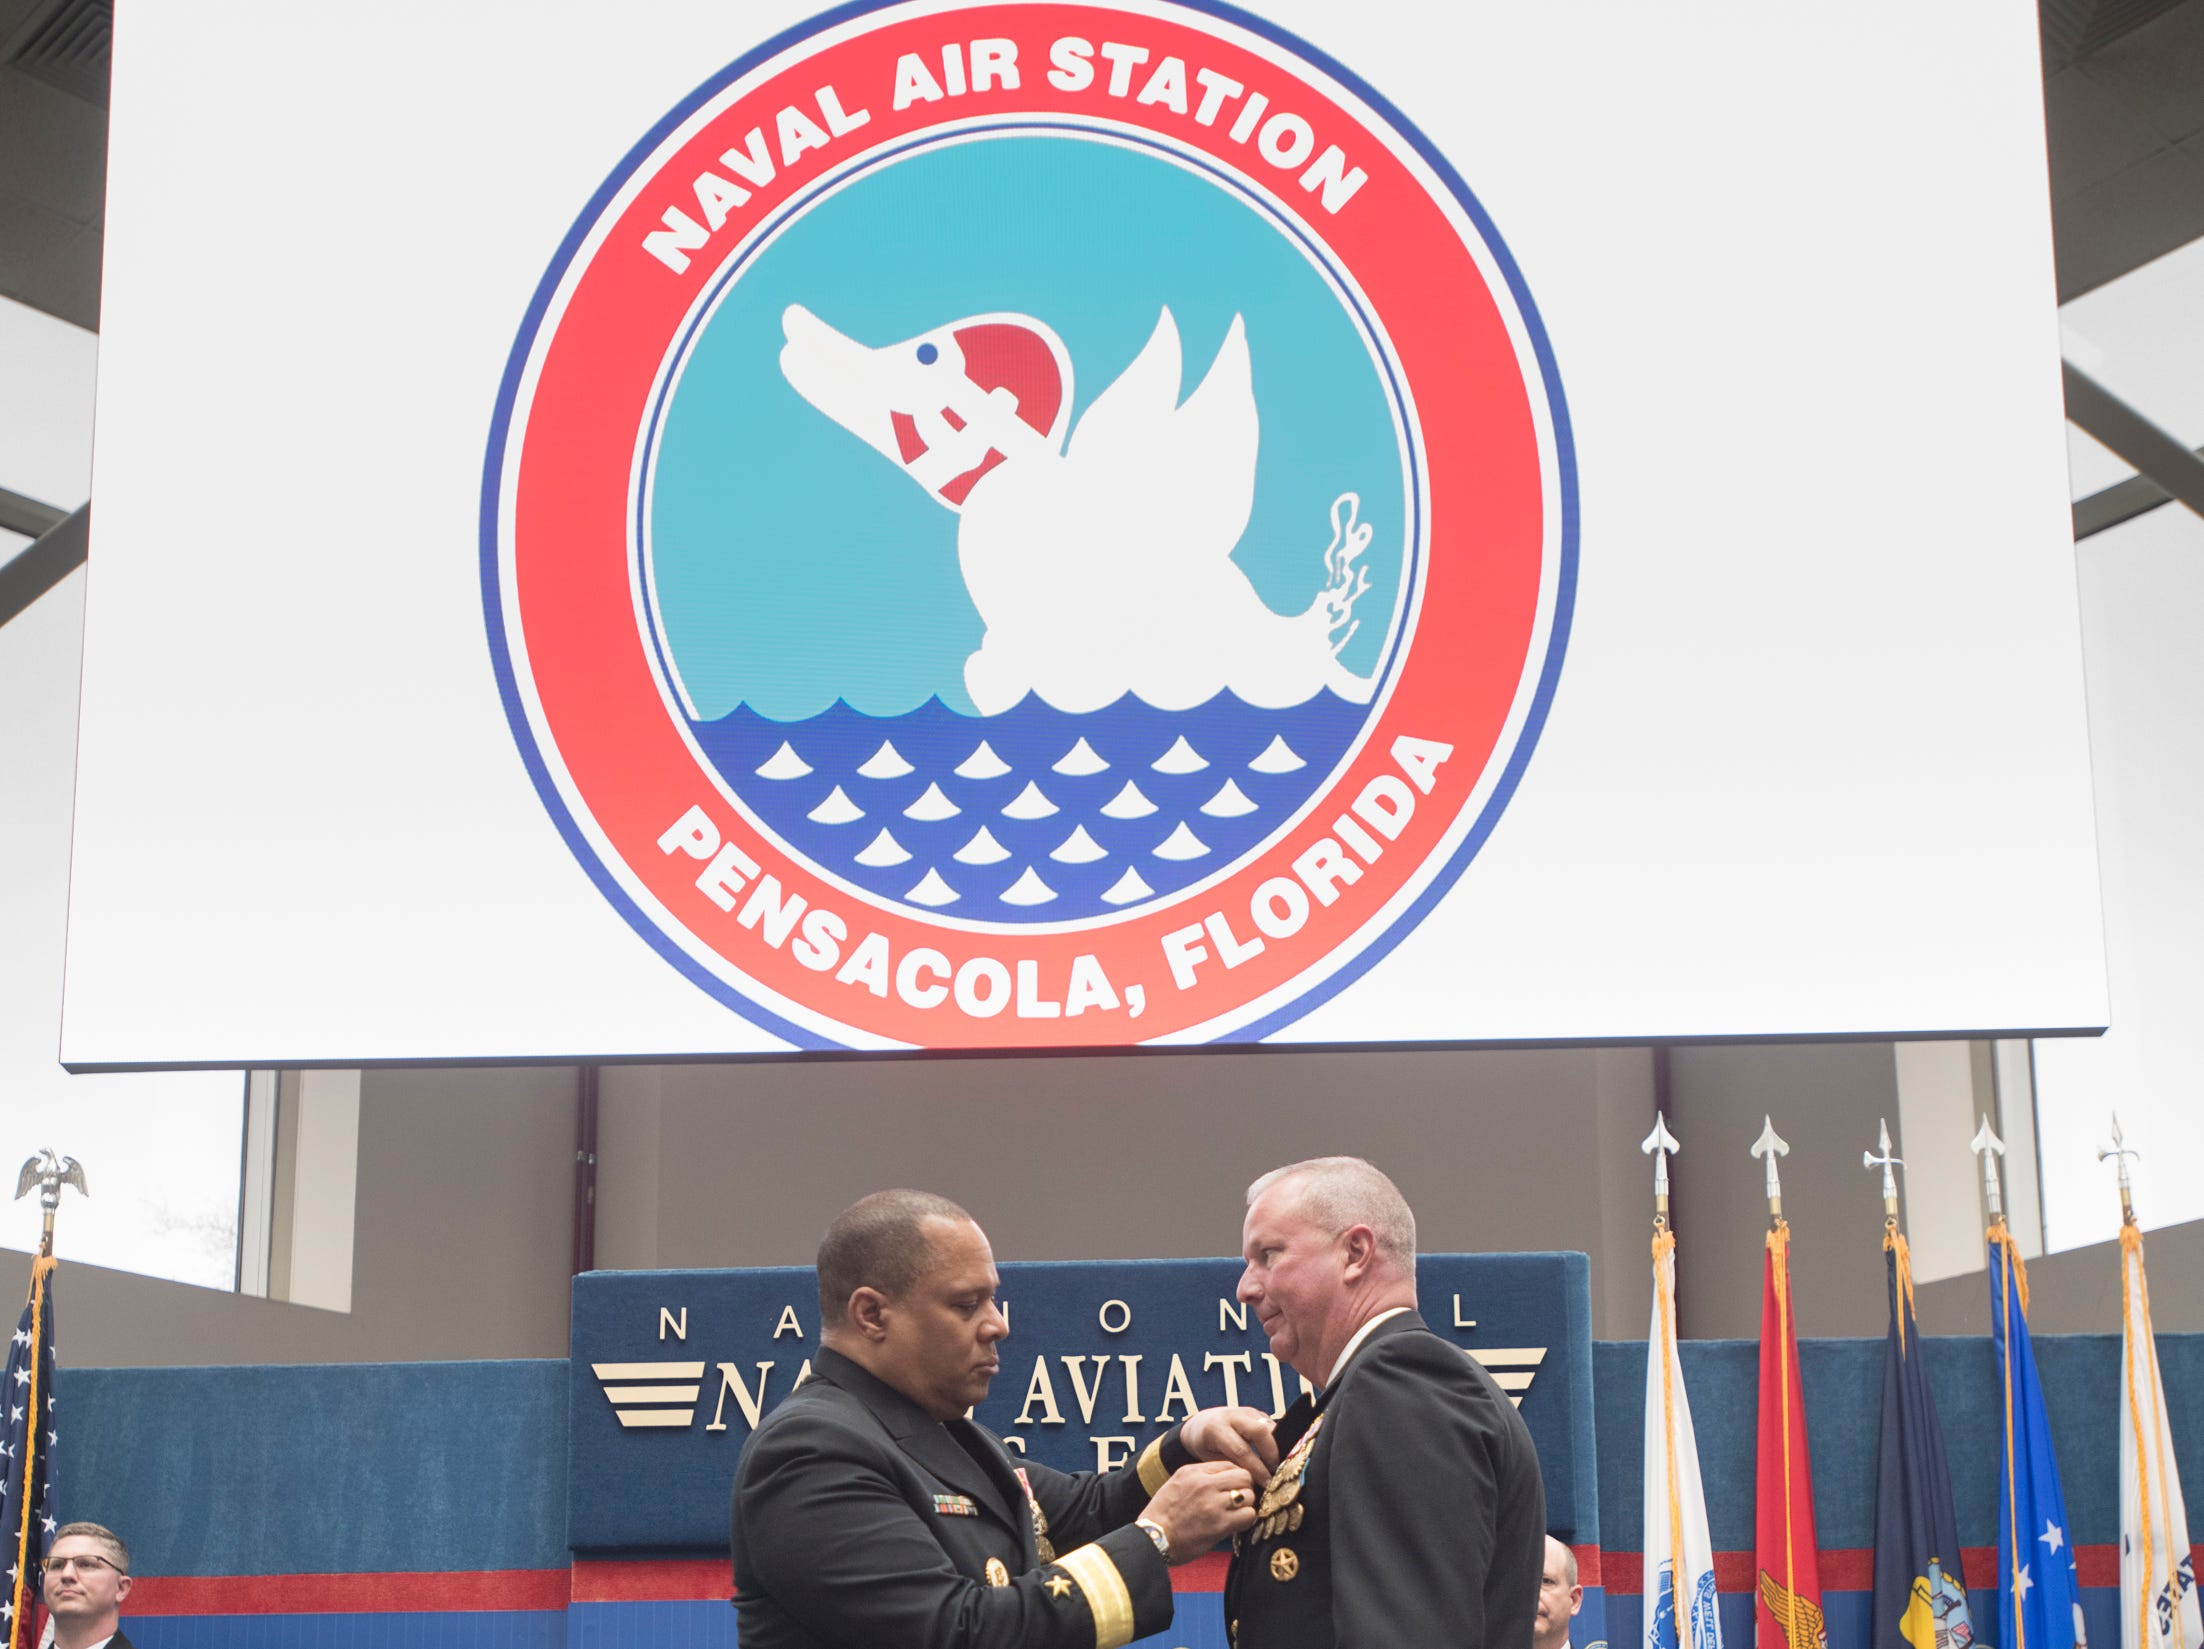 Change of Command at Naval Air Station Pensacola on Thursday, March 14, 2019.